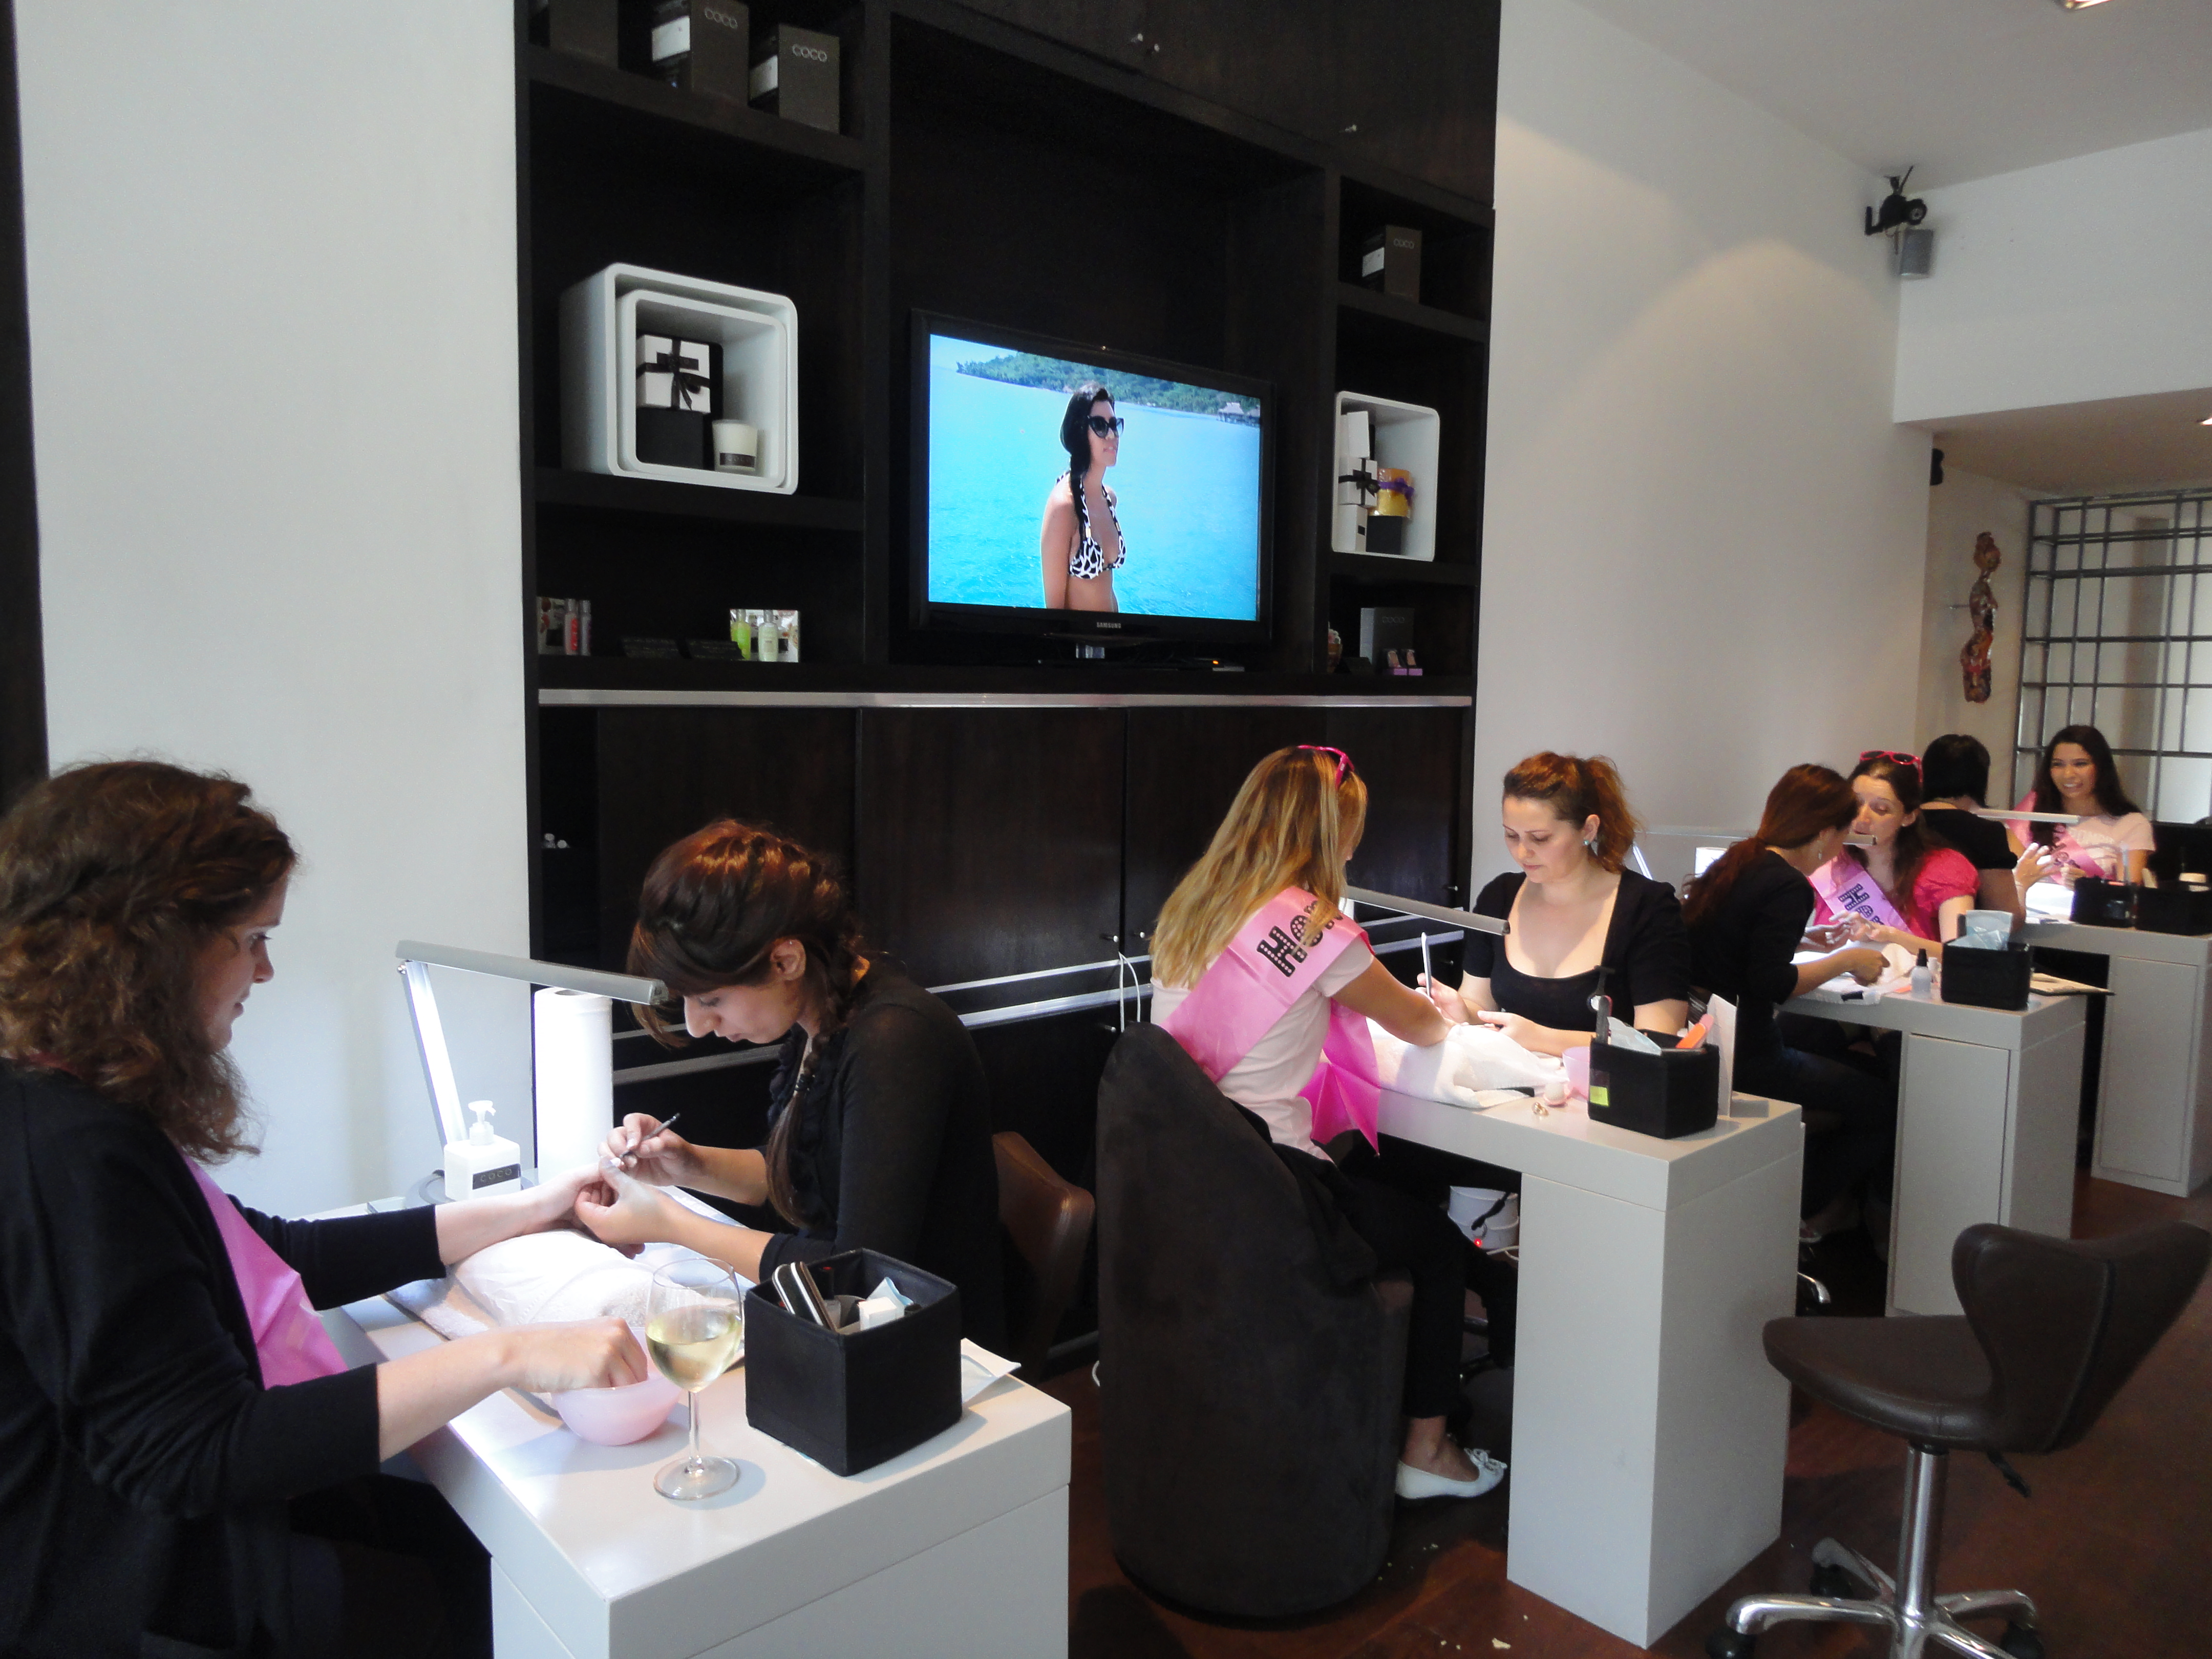 Bar ongles a french beauty addict in london for Salon pour les ongles